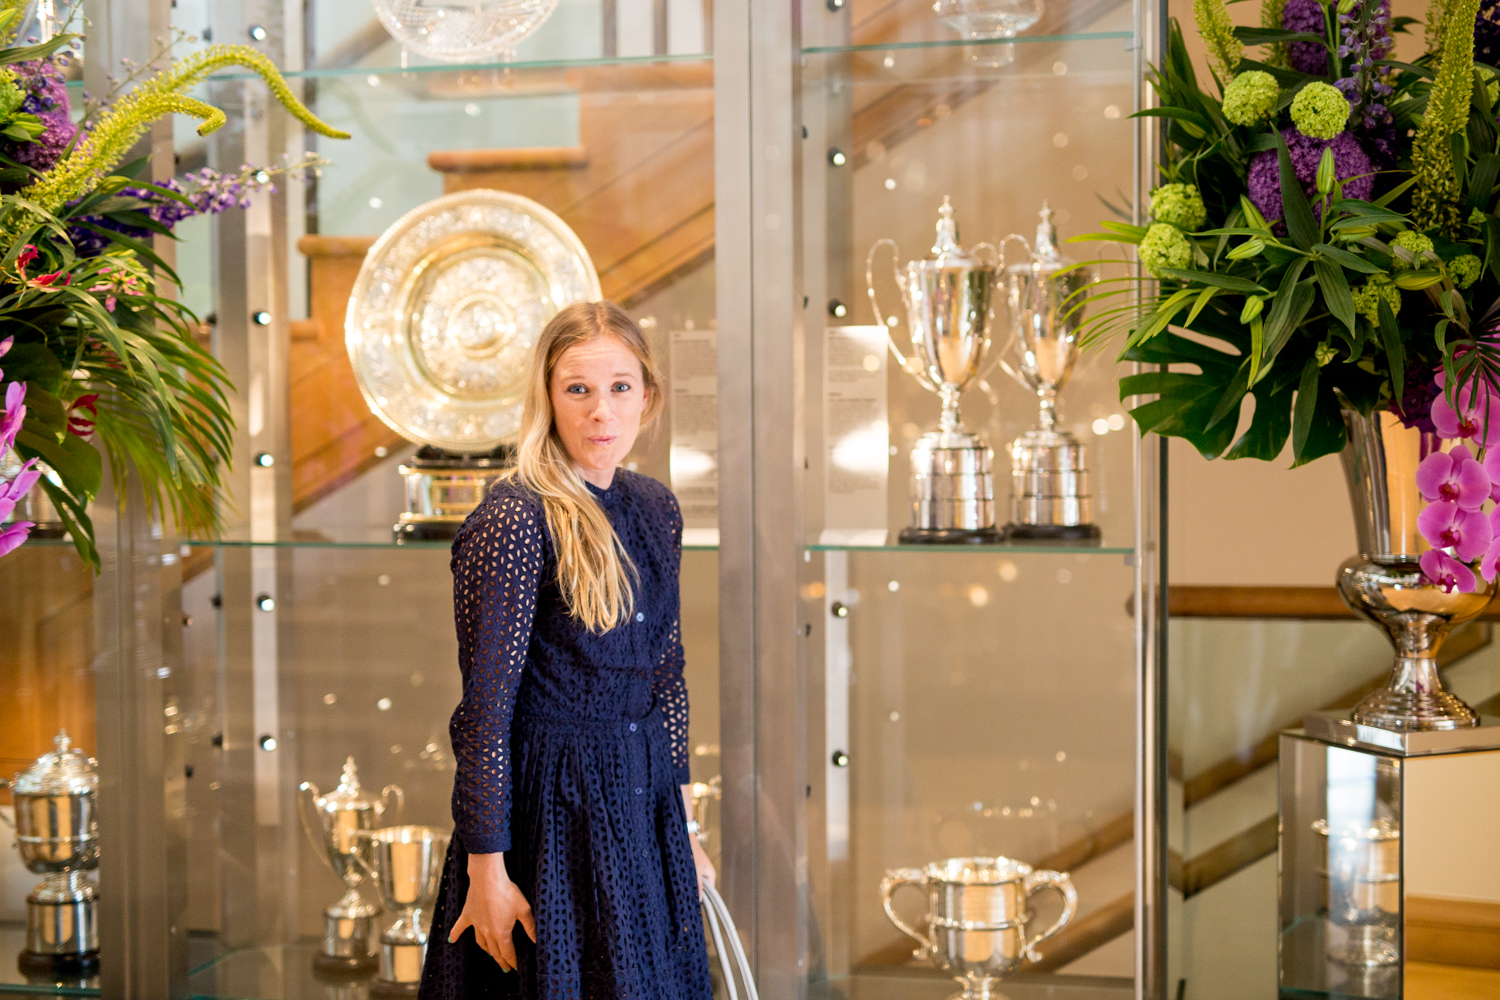 Trophy Cabinets  Wimbledon, Royal Box, Trophies, Cabinets, Tennis, Clubhouse